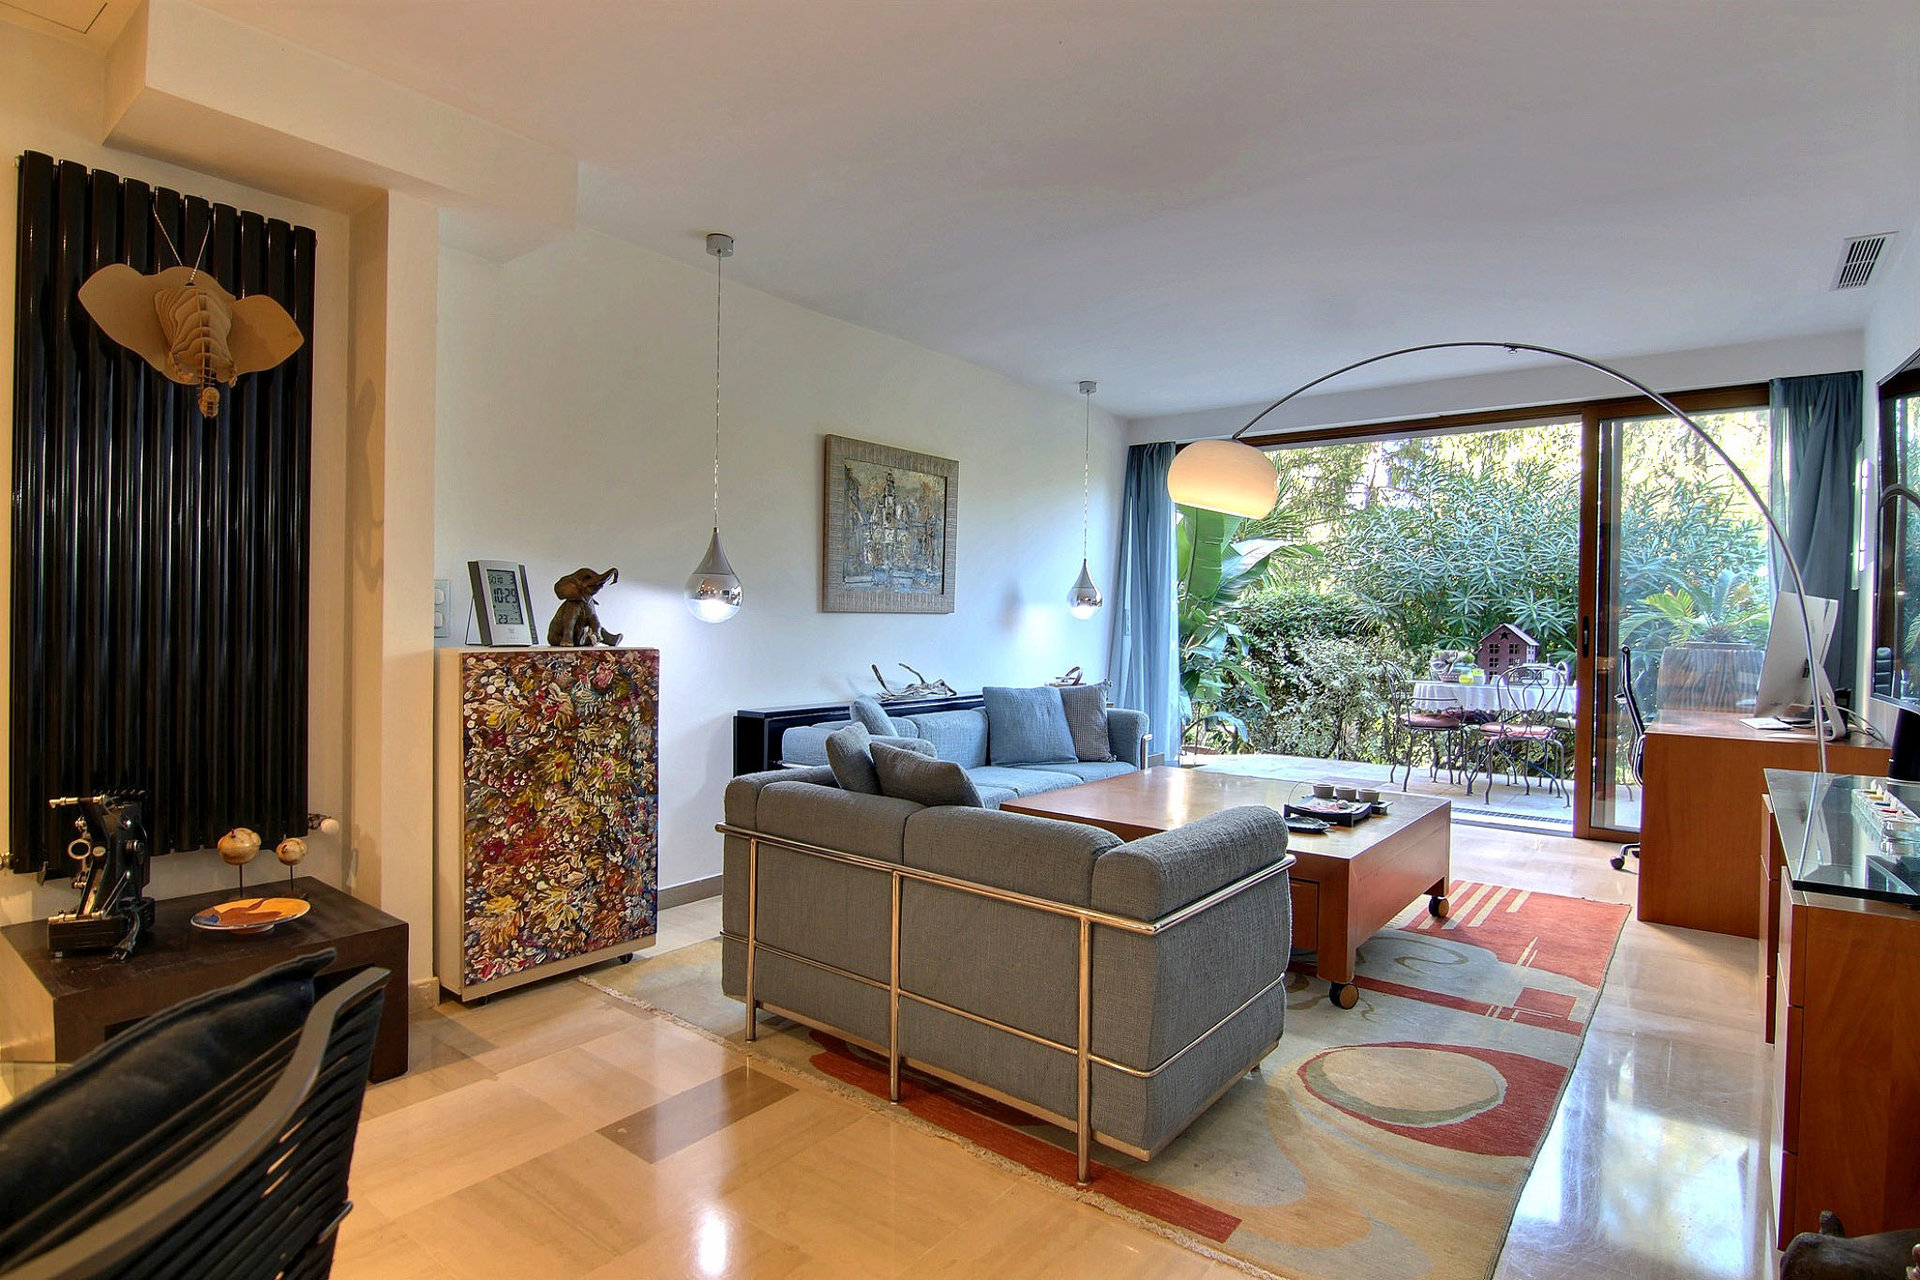 LE CANNET MAIRIE SALE 3 ROOMS IN QUIET NEAR AMENITIES